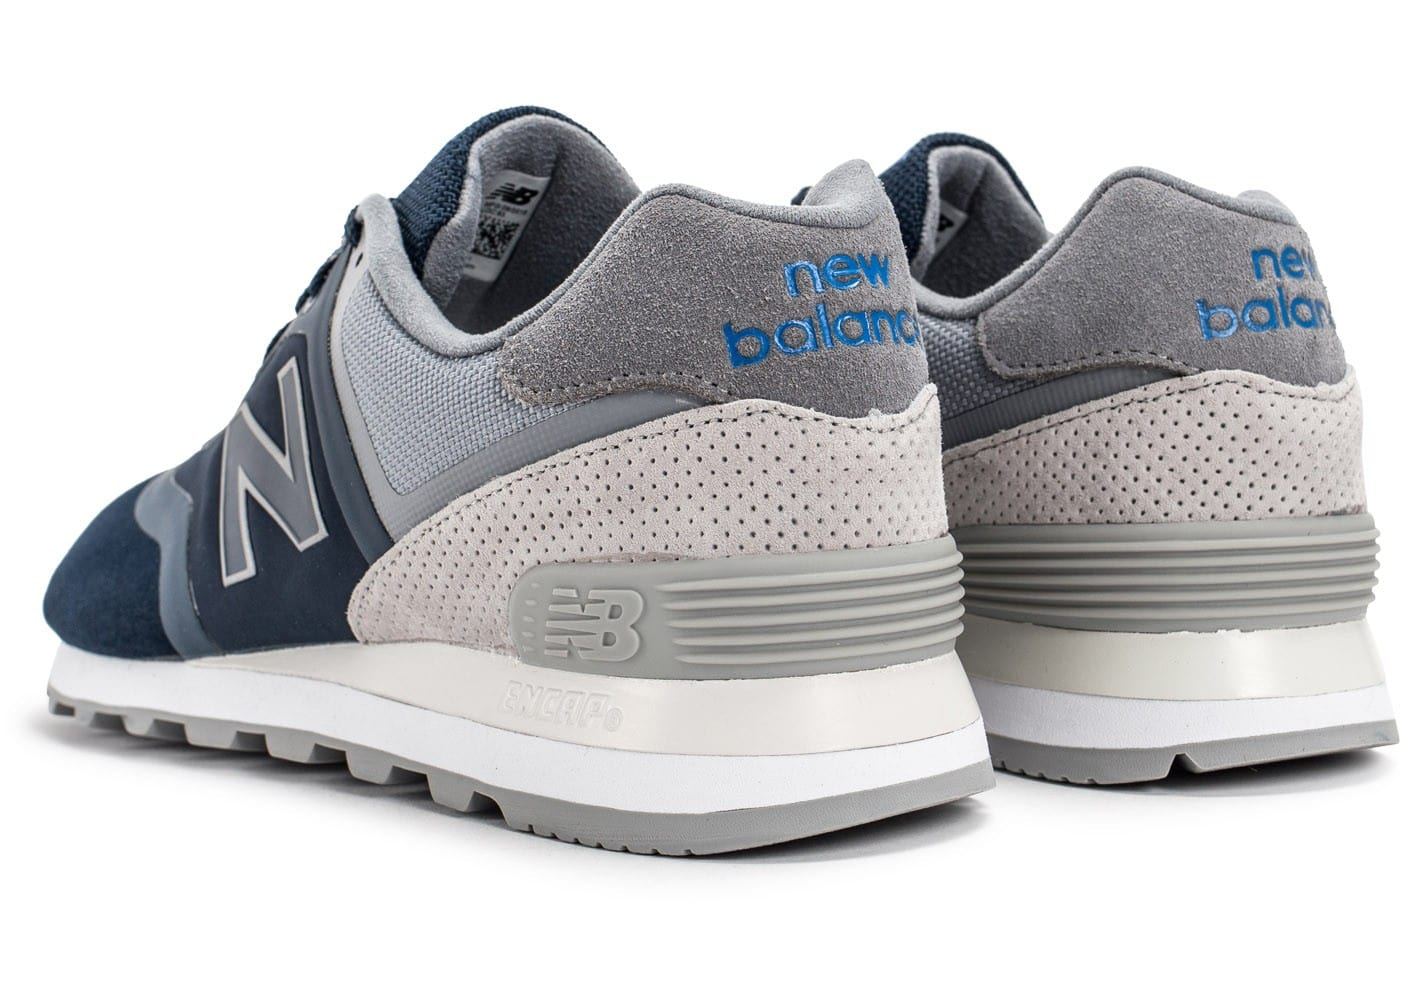 soldes new balance 574 re engineered suede bleu marine chaussures homme chausport. Black Bedroom Furniture Sets. Home Design Ideas